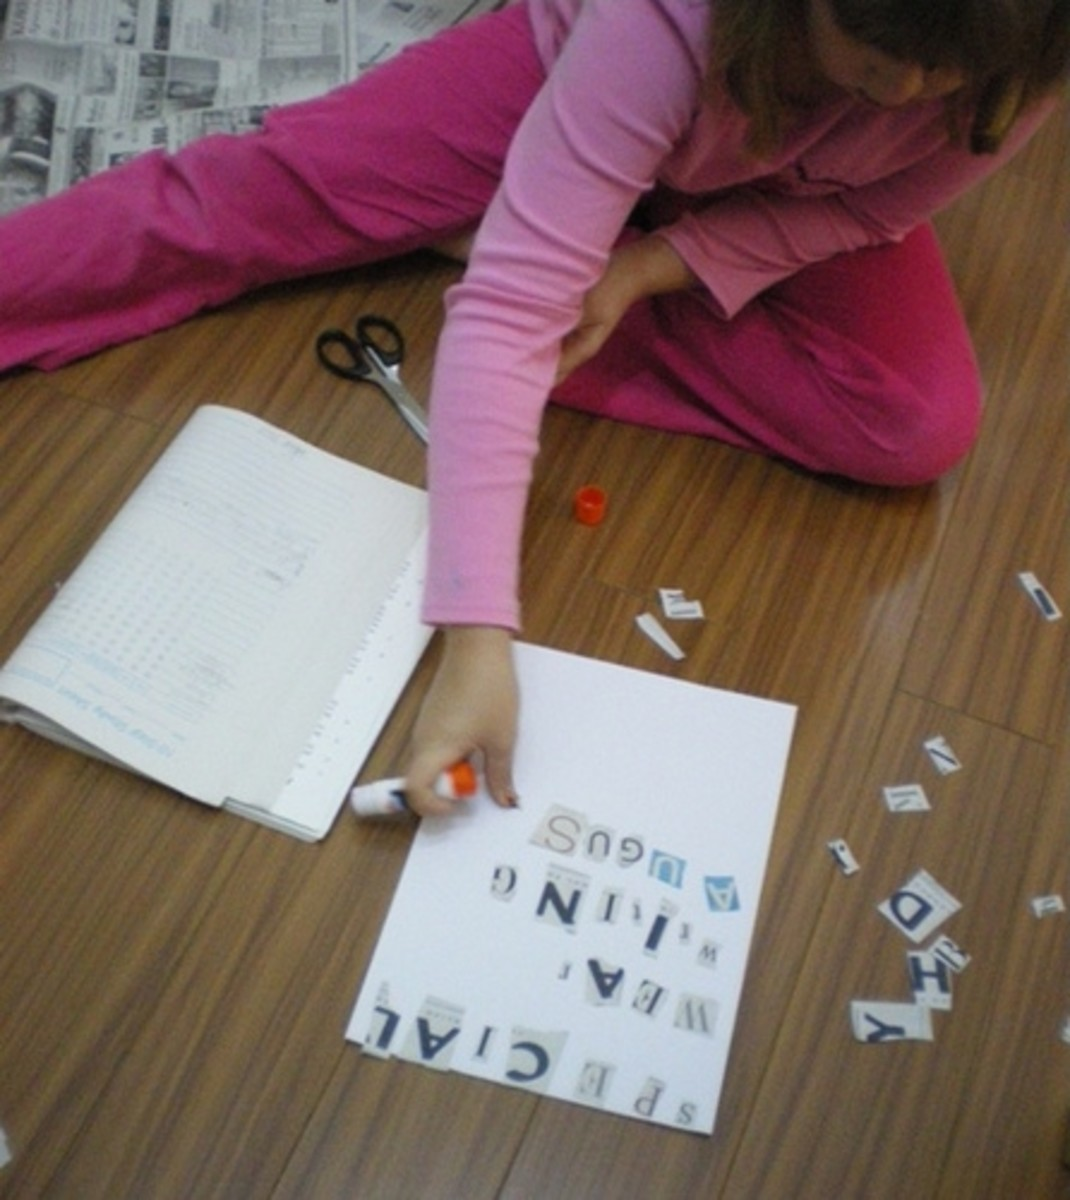 Spelling with ransom note letters